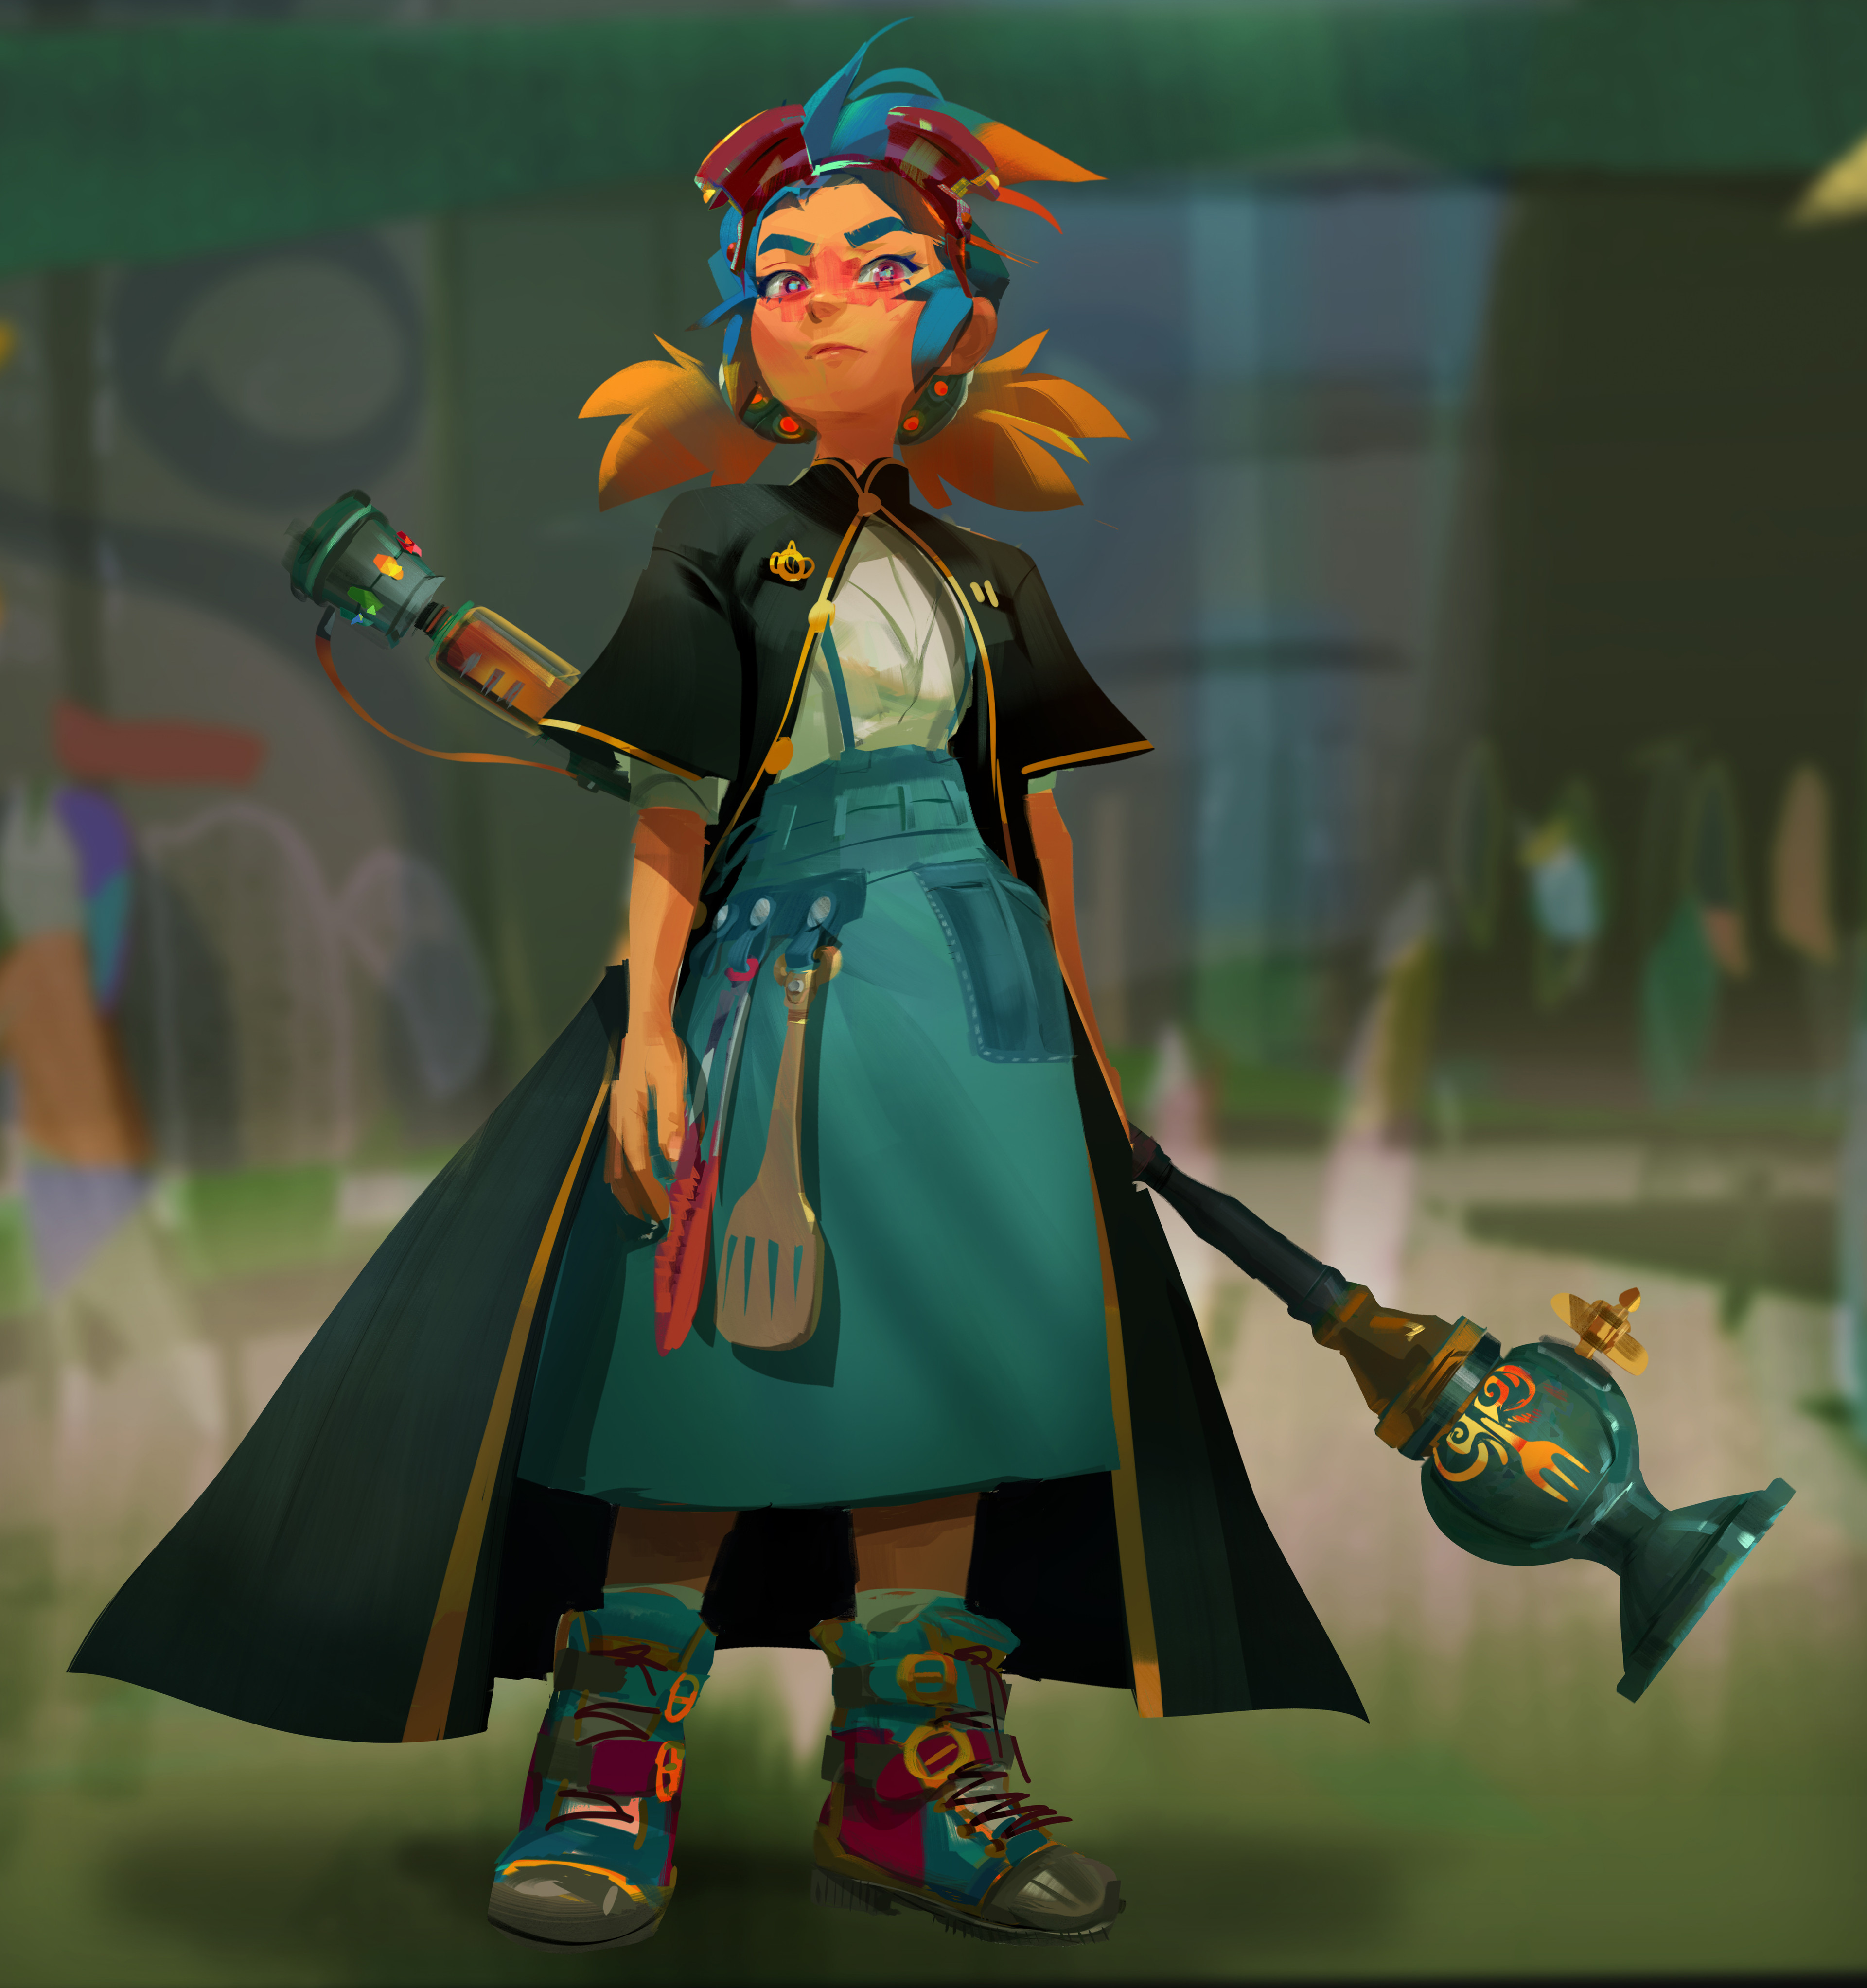 Anise, the main character. A scholarship recipient to a world renowned magical culinary academy!